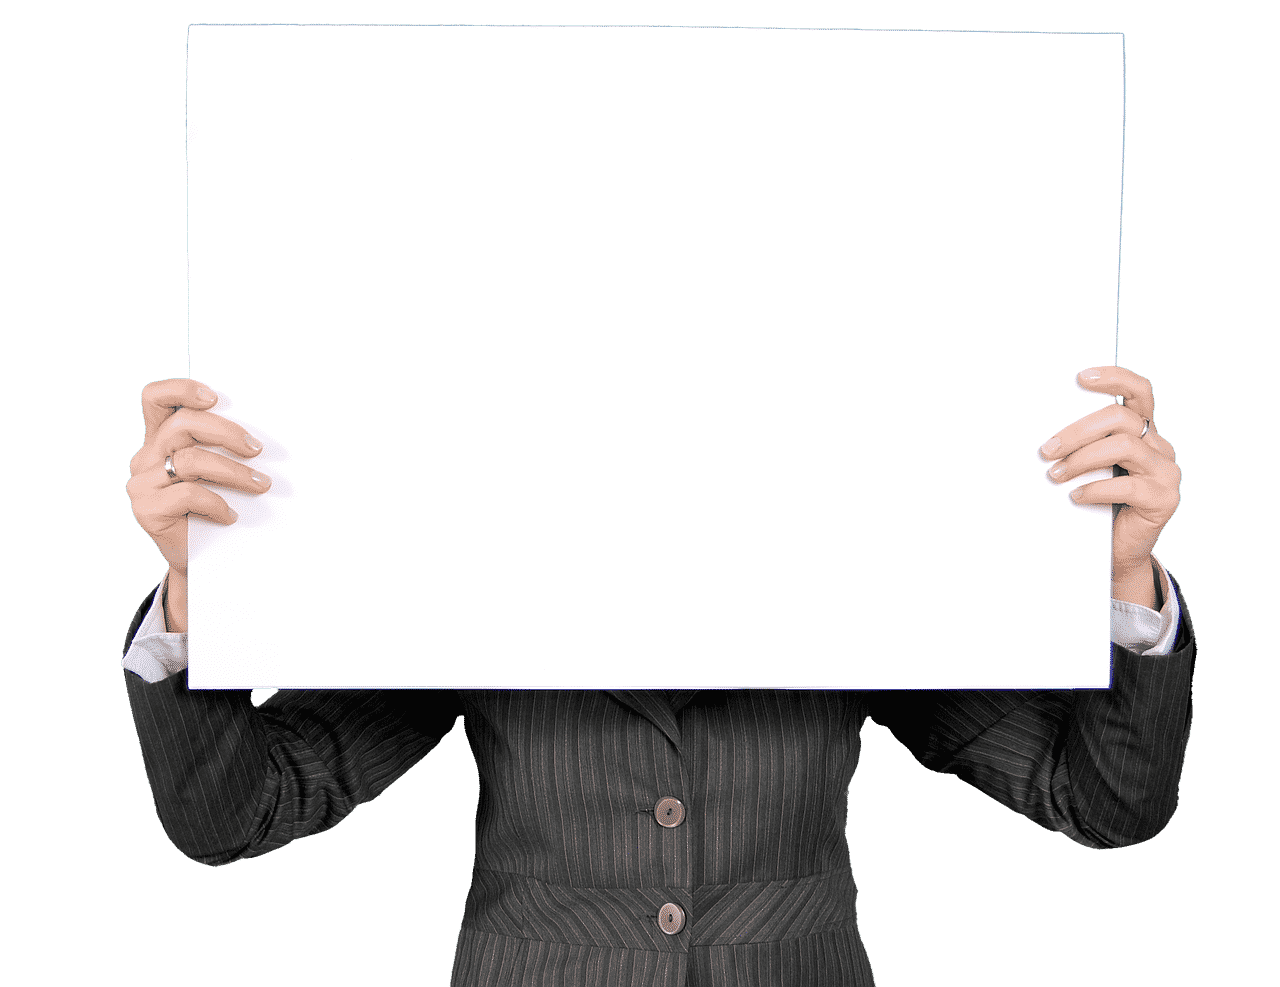 Man holding blank sign with no message